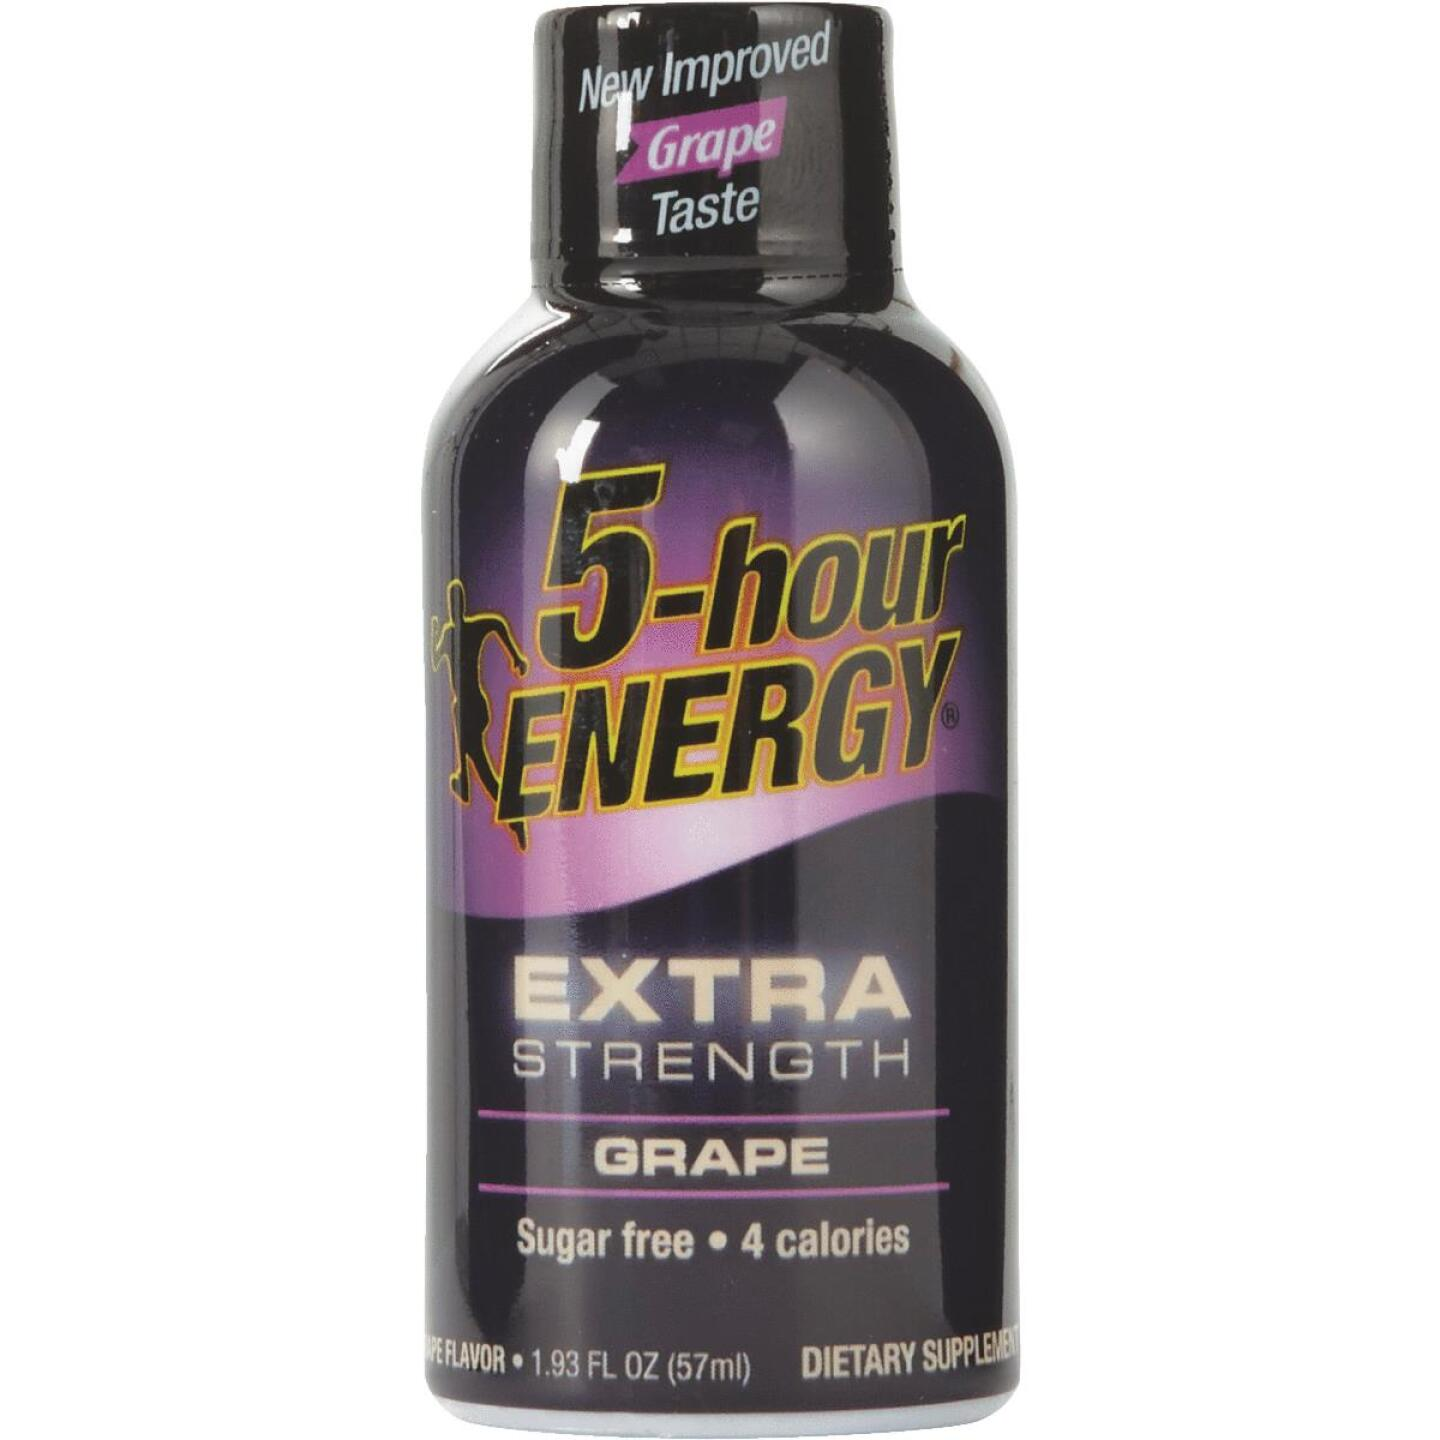 5 Hour Energy 1.93 Oz. Extra-Strength Grape Flavor Energy Drink Image 1